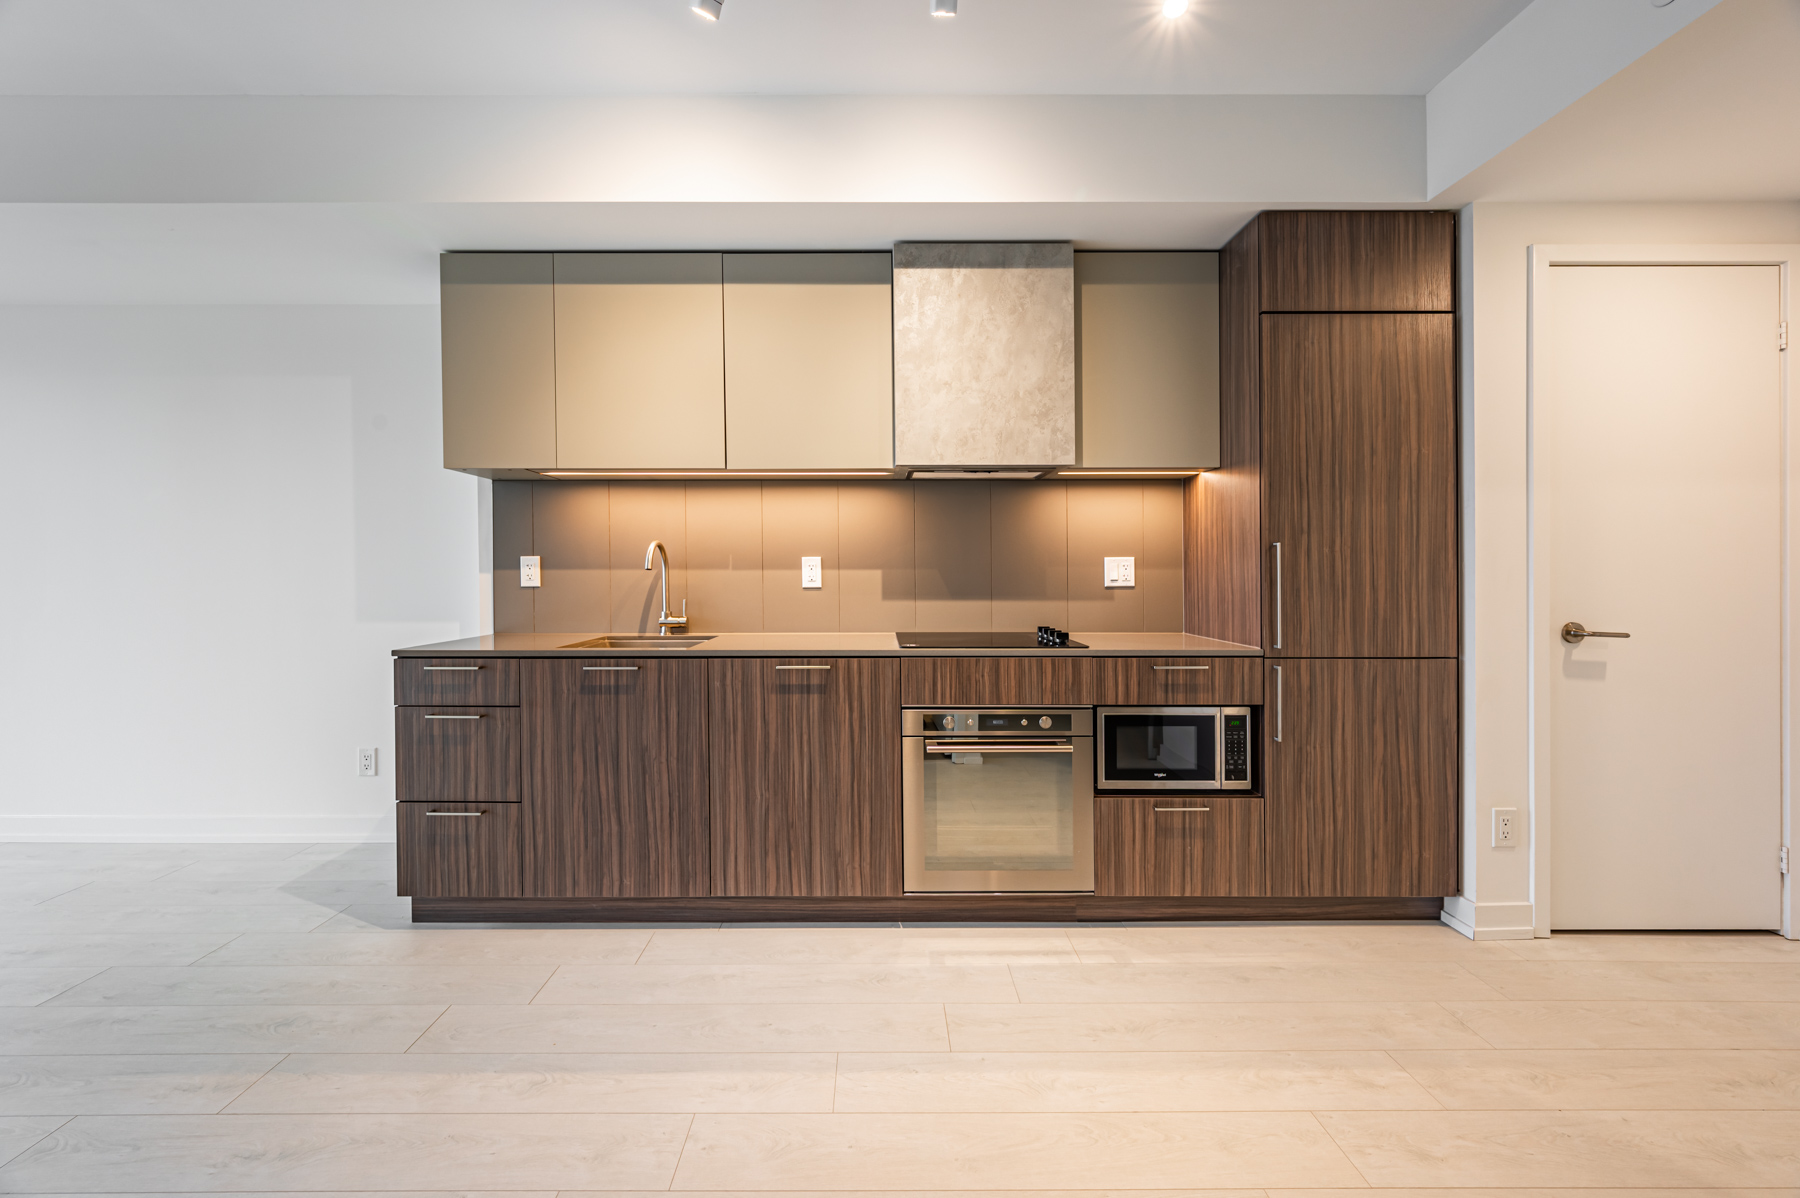 Stylish linear kitchen of 19 Western Battery Rd Unit 2921.